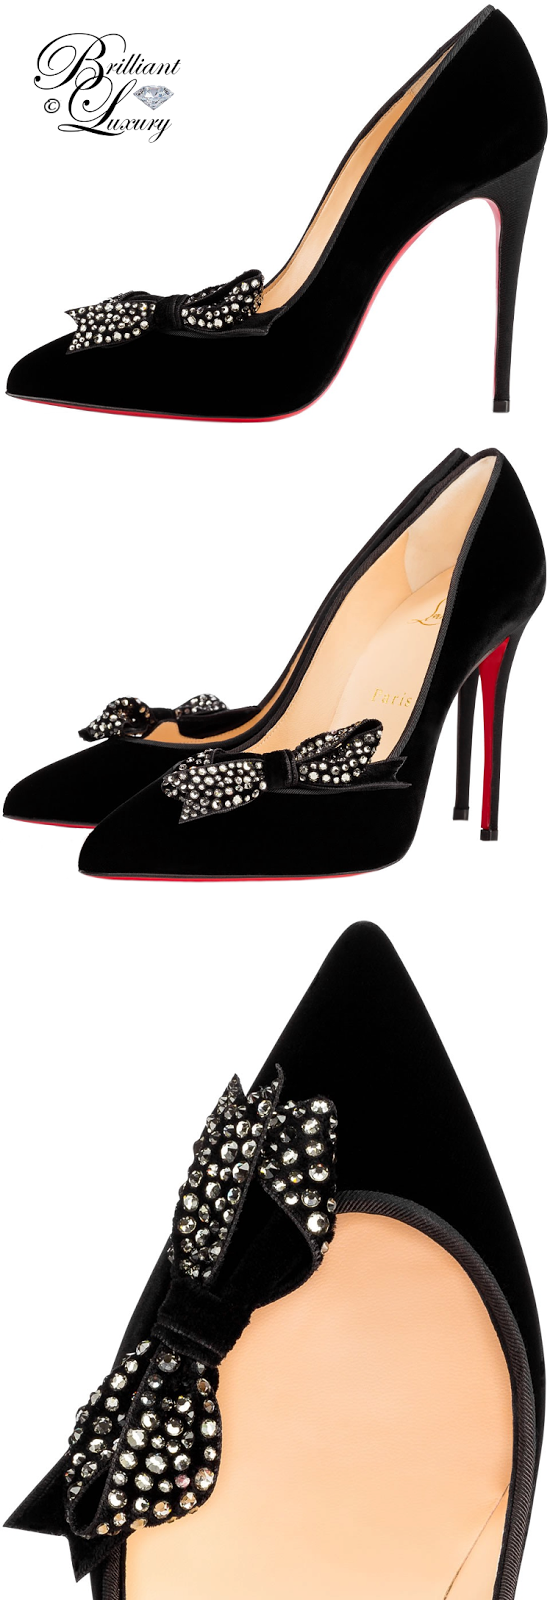 Brilliant Luxury ♦ Christian Louboutin Madame Menule Pumps